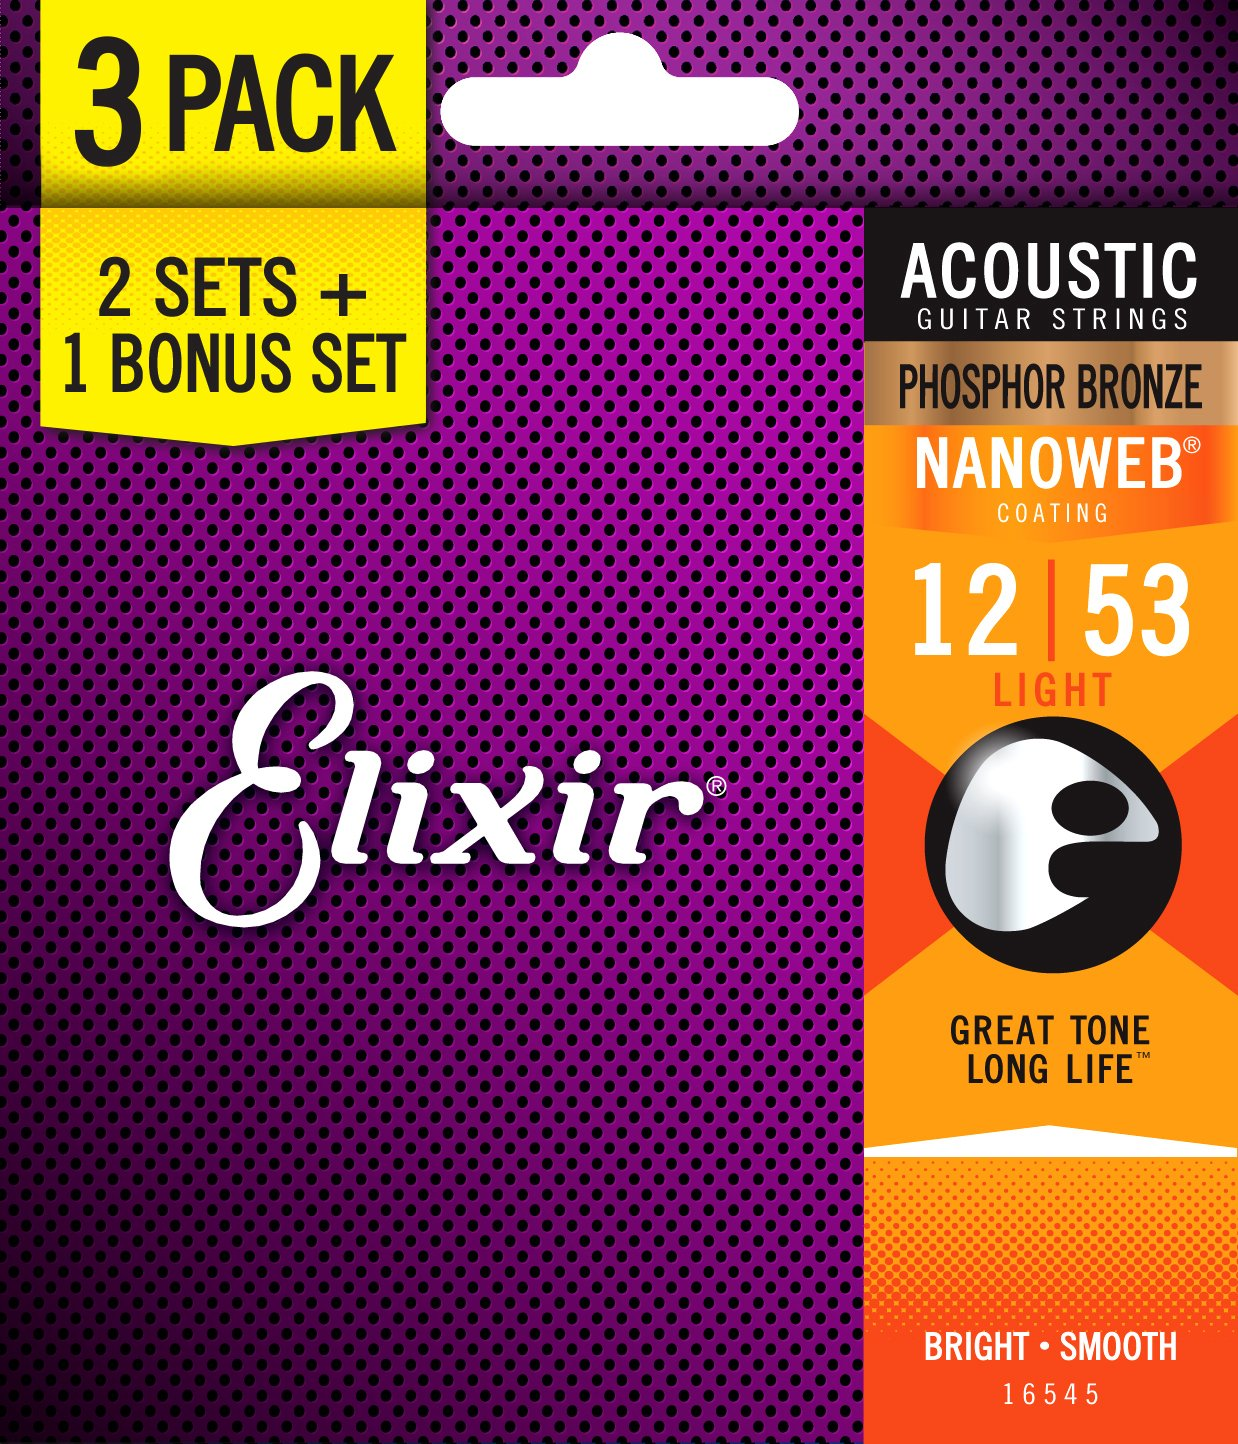 Elixir Strings 16545 Acoustic Phosphor Bronze Guitar Strings with NANOWEB Coating, 3 Pack, Light (.012-.053) by Elixir